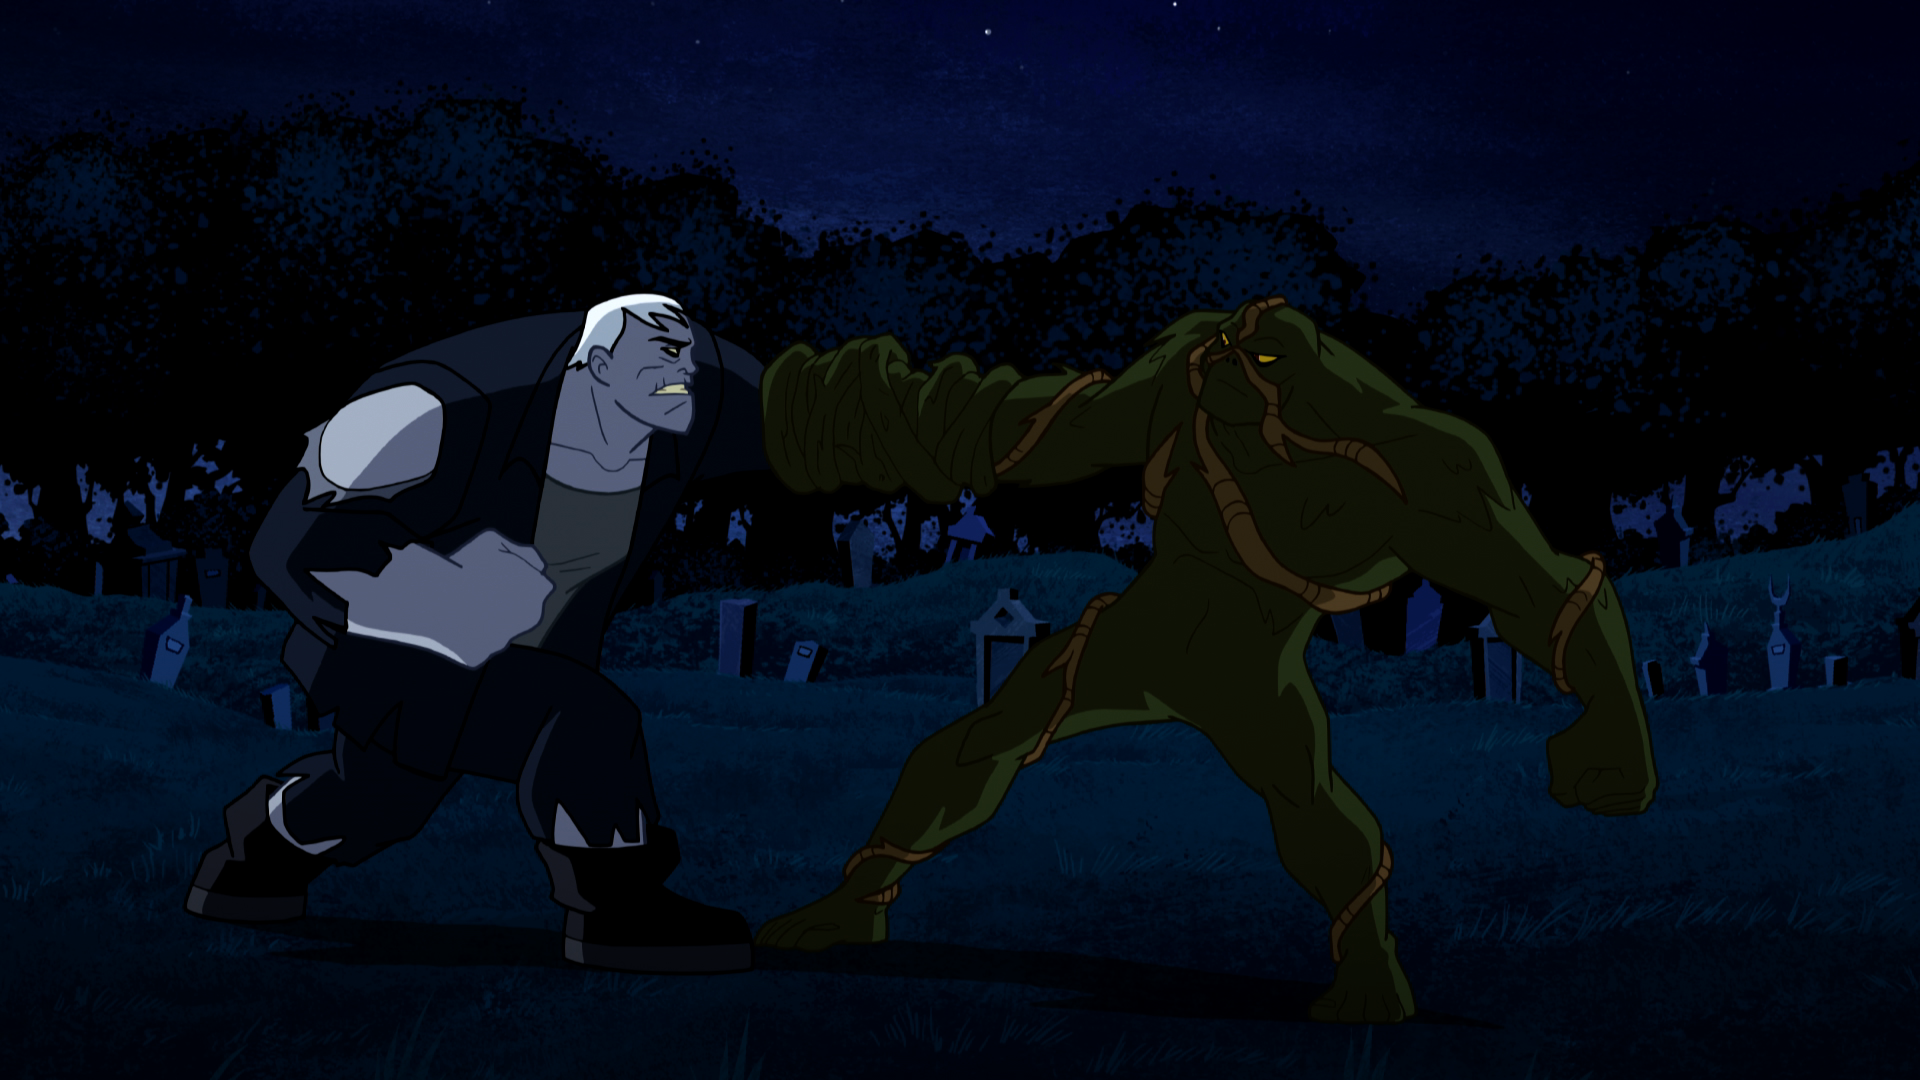 The Latest Justice League Action Will Feature A Swamp Thing/Solomon Grundy Smackdown